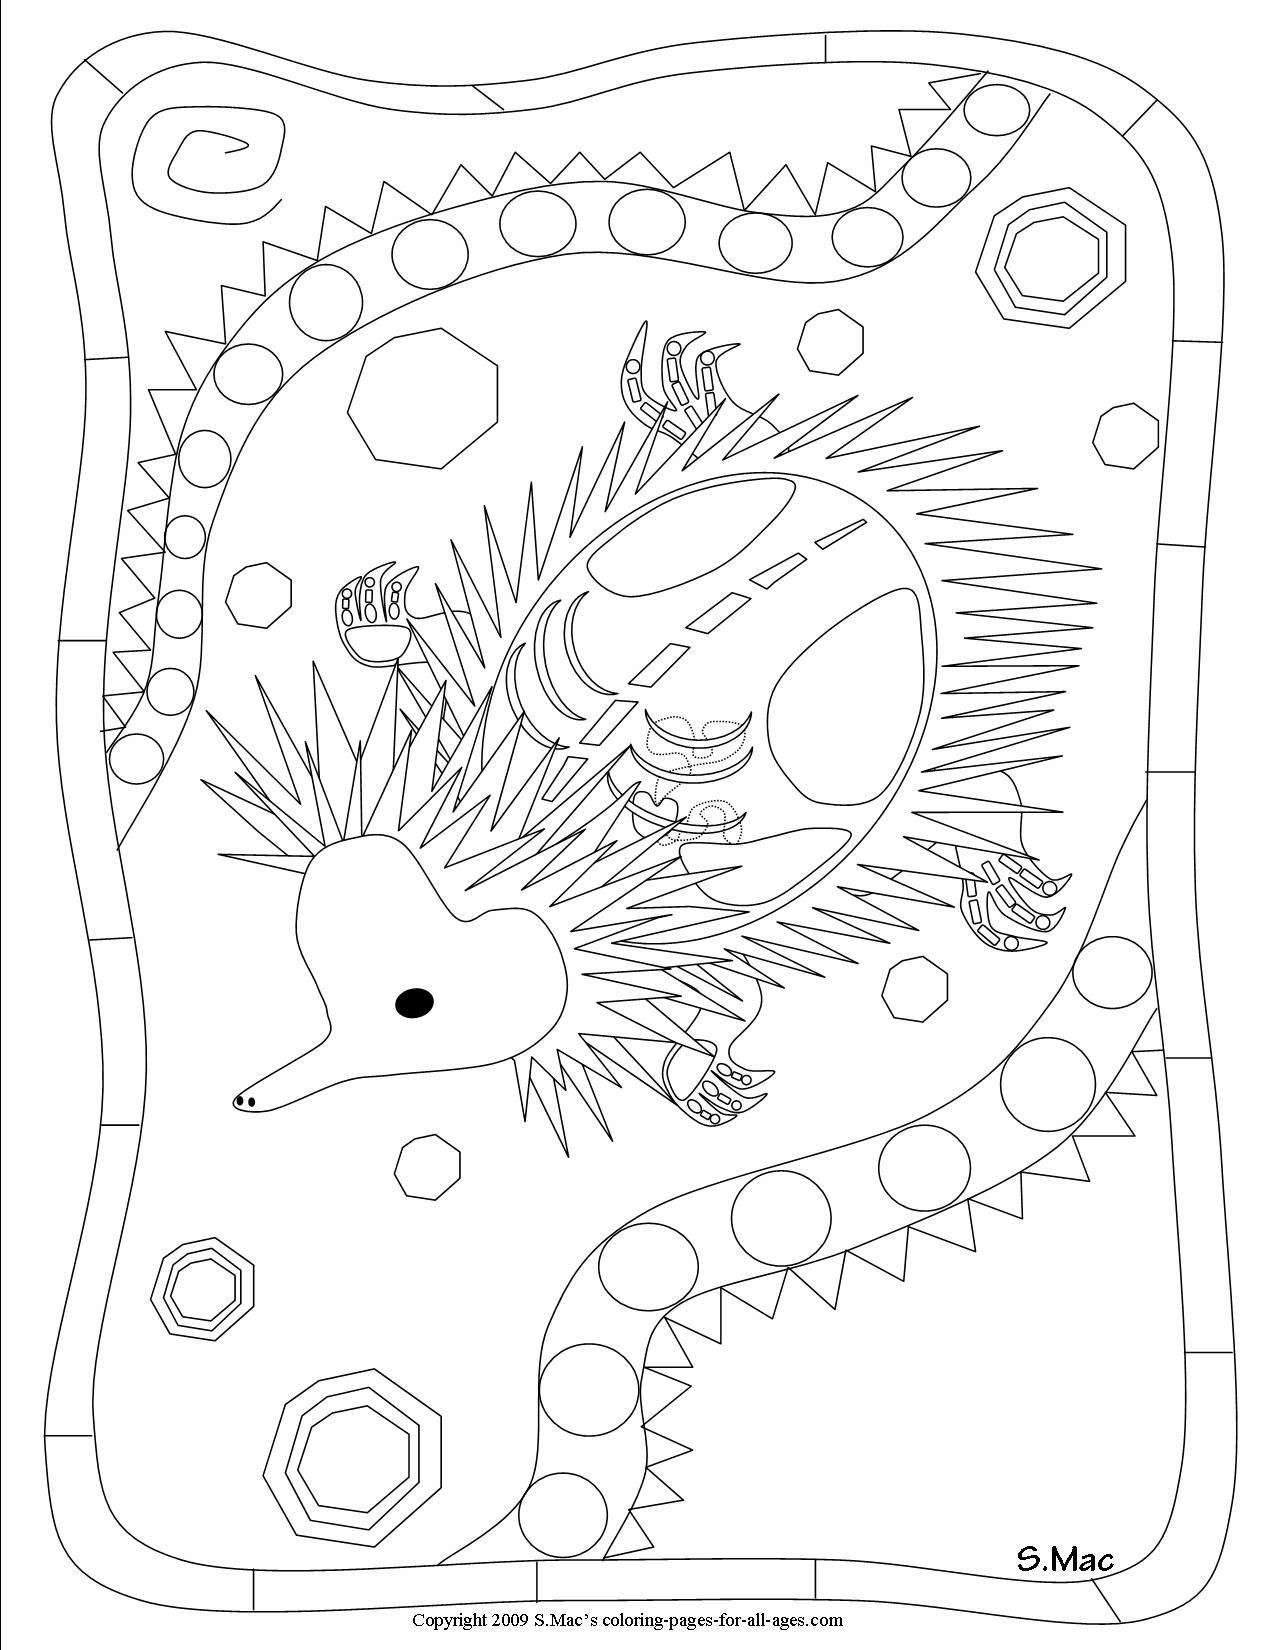 X ray coloring sheets - S Mac S Echidna X Ray Art Coloring Page Australie Squelette